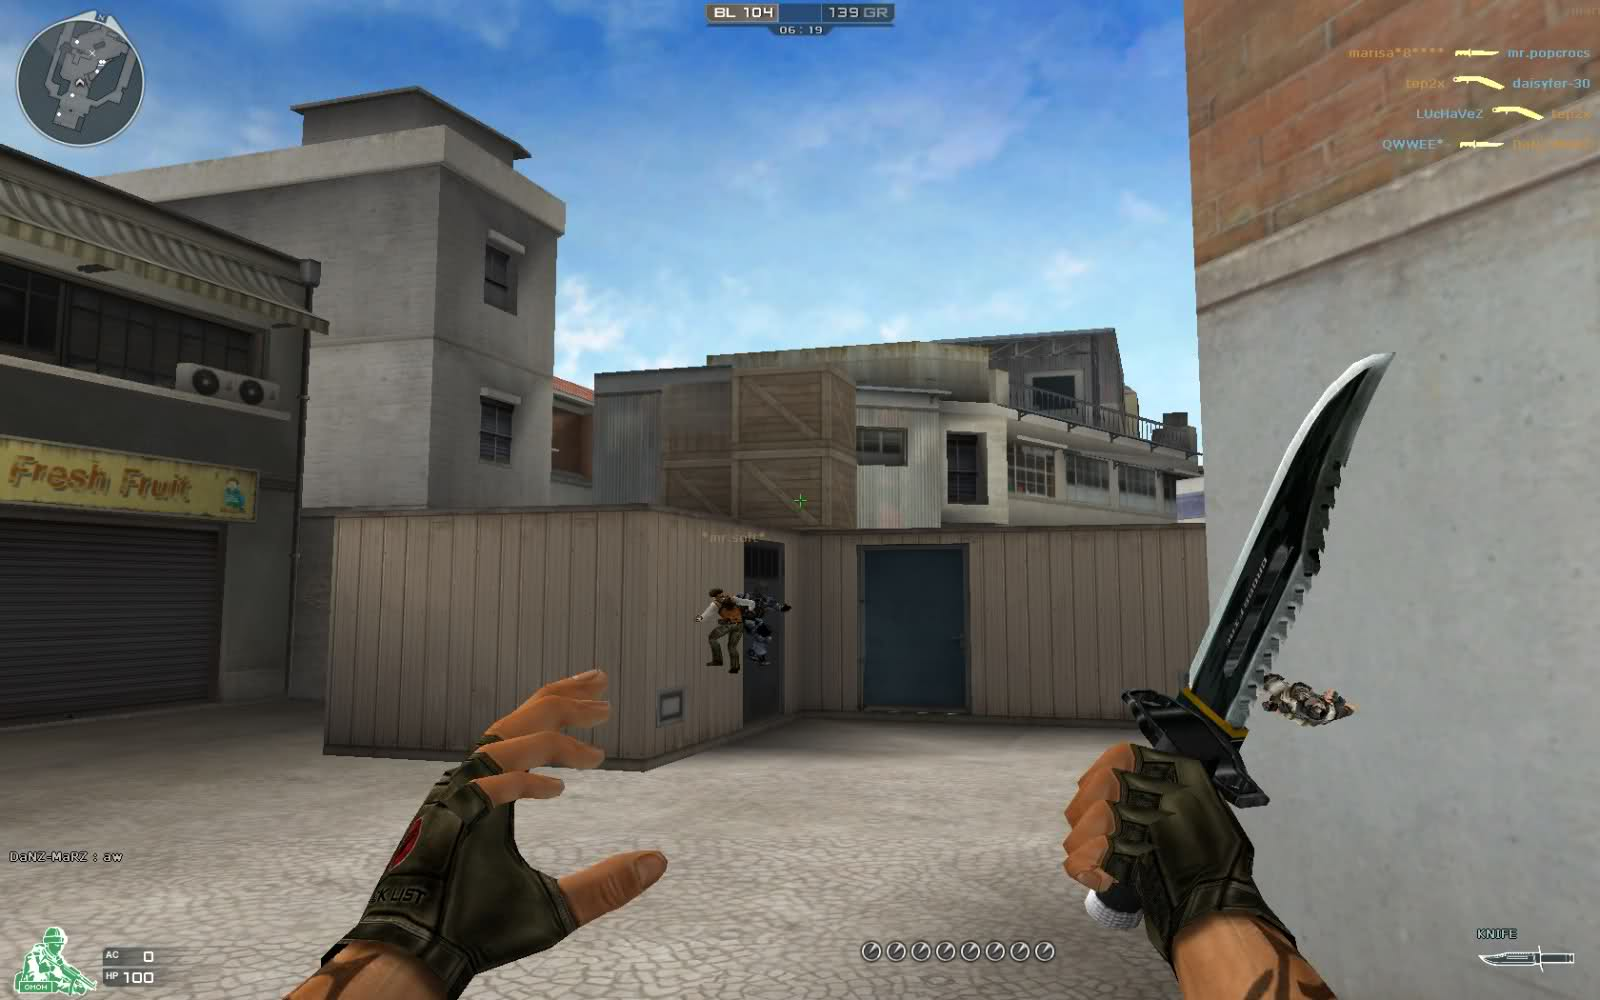 CrossFire Hile D3D Wallhack Paint Mode CrssHair v10.05.2013 indir